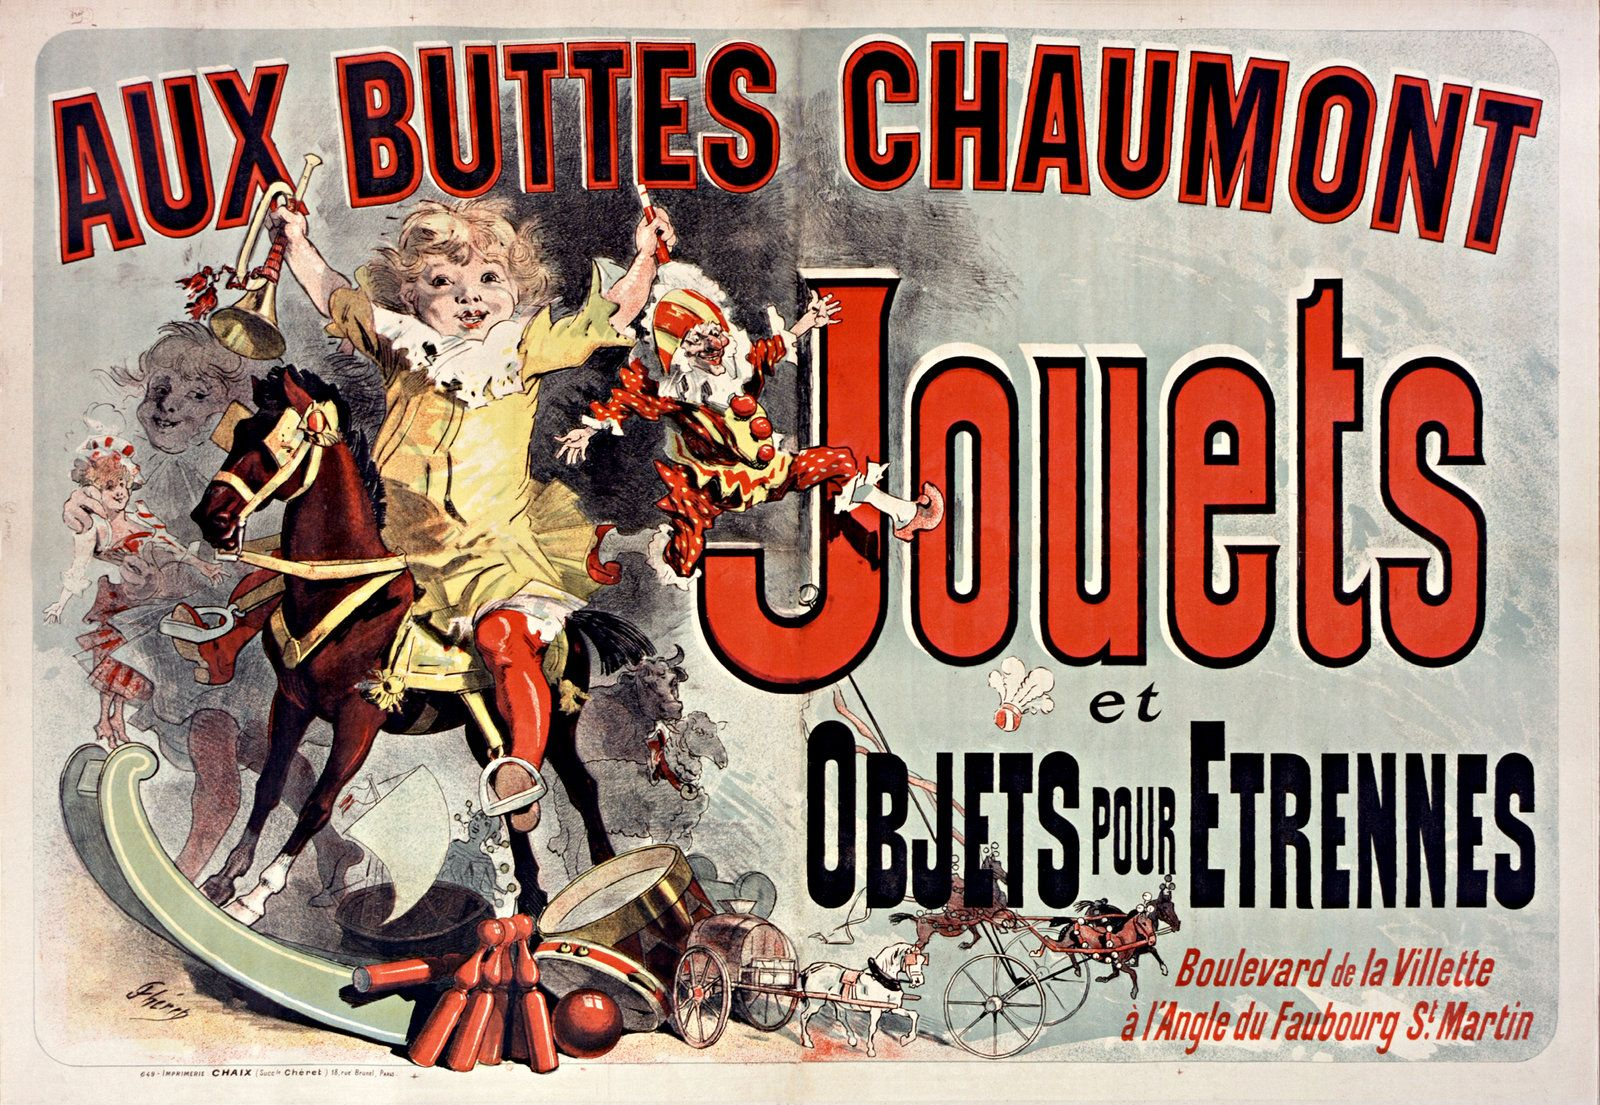 Aux Buttes Chaumont Vintage French Ad Poster By Sammyag D7c9ue7 Jpg 1600 1105 Friends Poster Friends Apartment Friends Tv